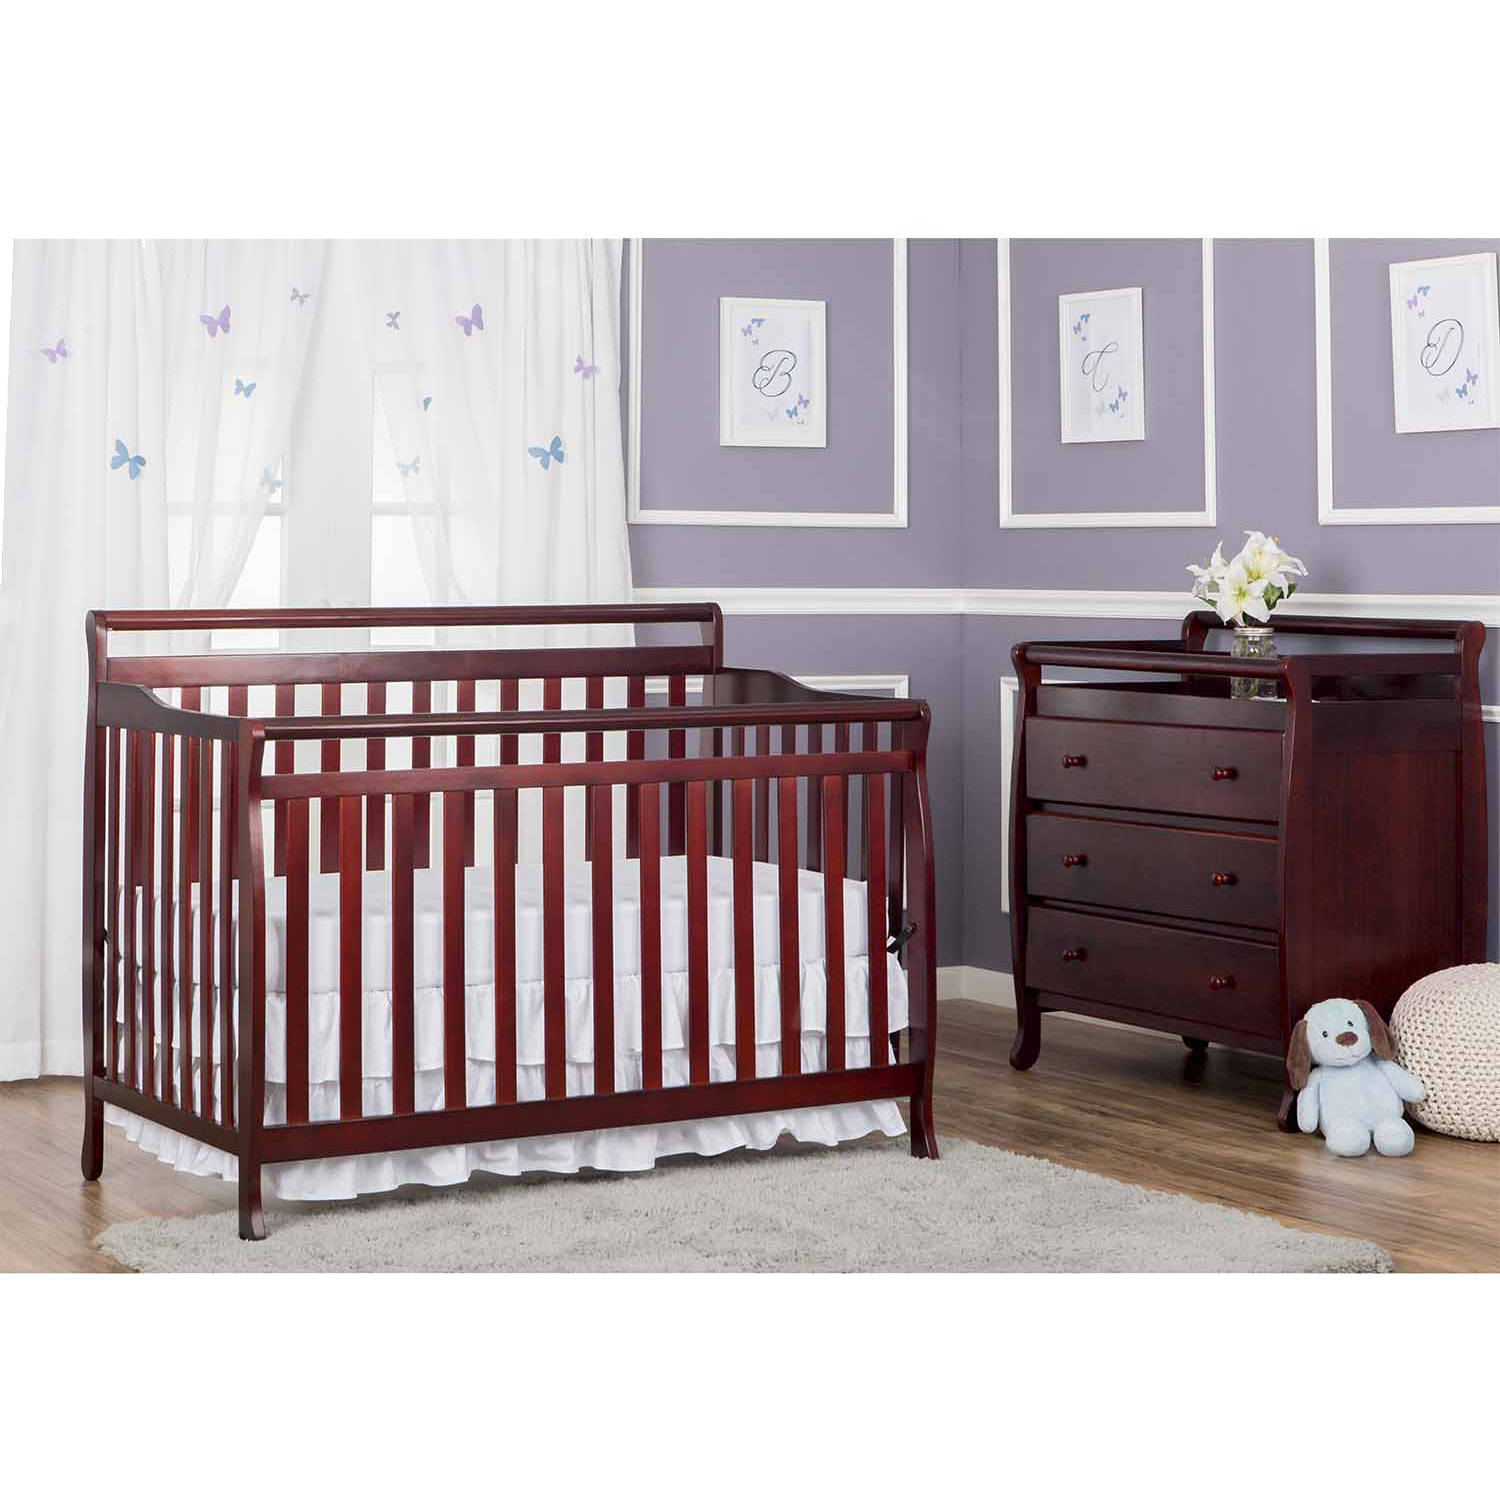 Dream On Me Liberty 5-in-1 Convertible Crib, Choose Your Finish